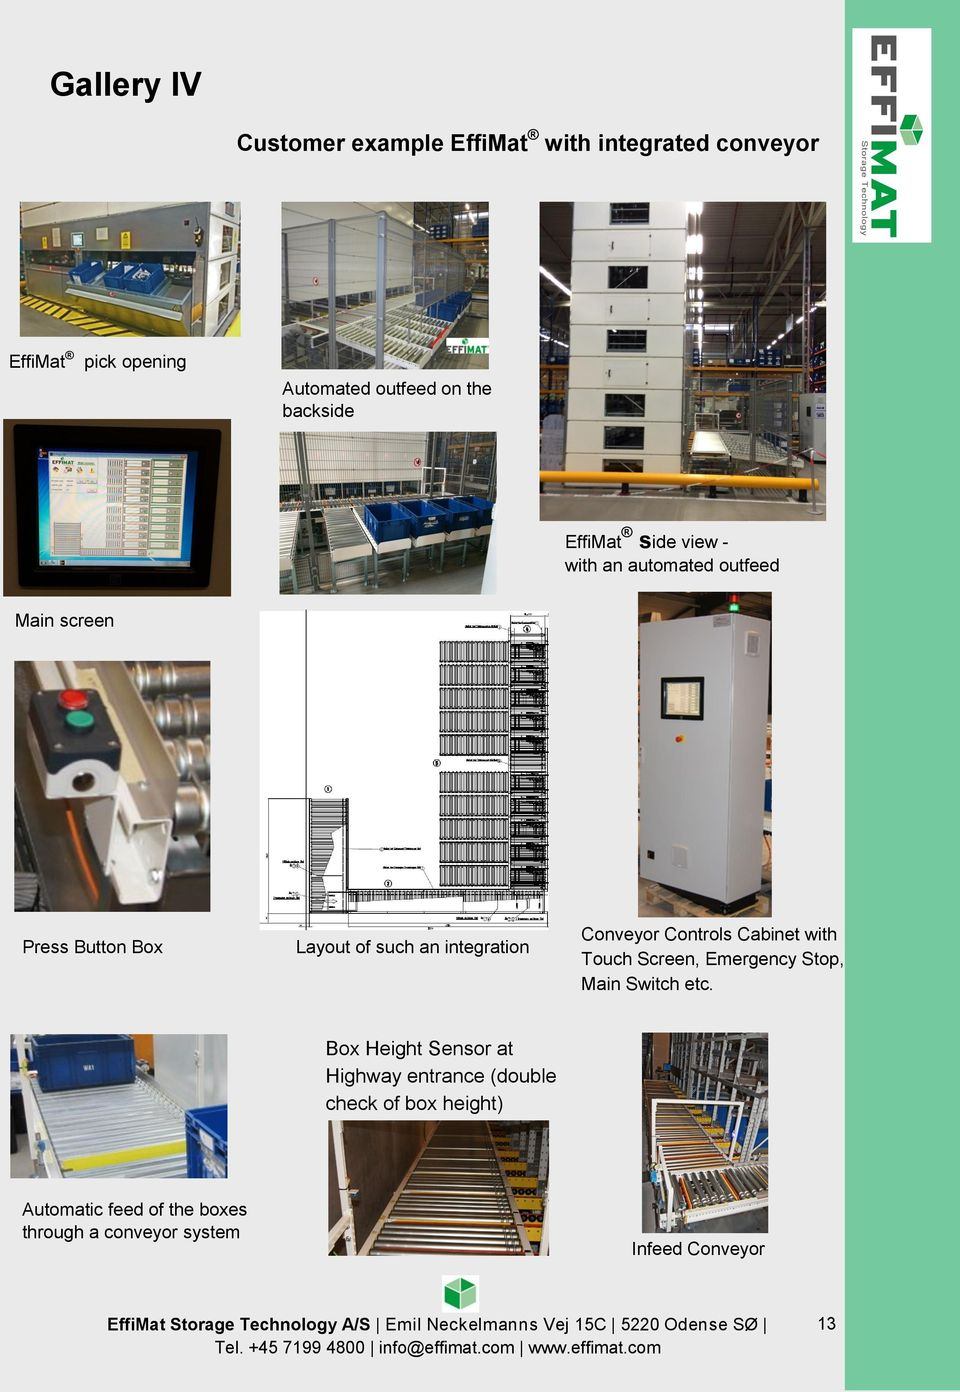 integration Conveyor Controls Cabinet with Touch Screen, Emergency Stop, Main Switch etc.